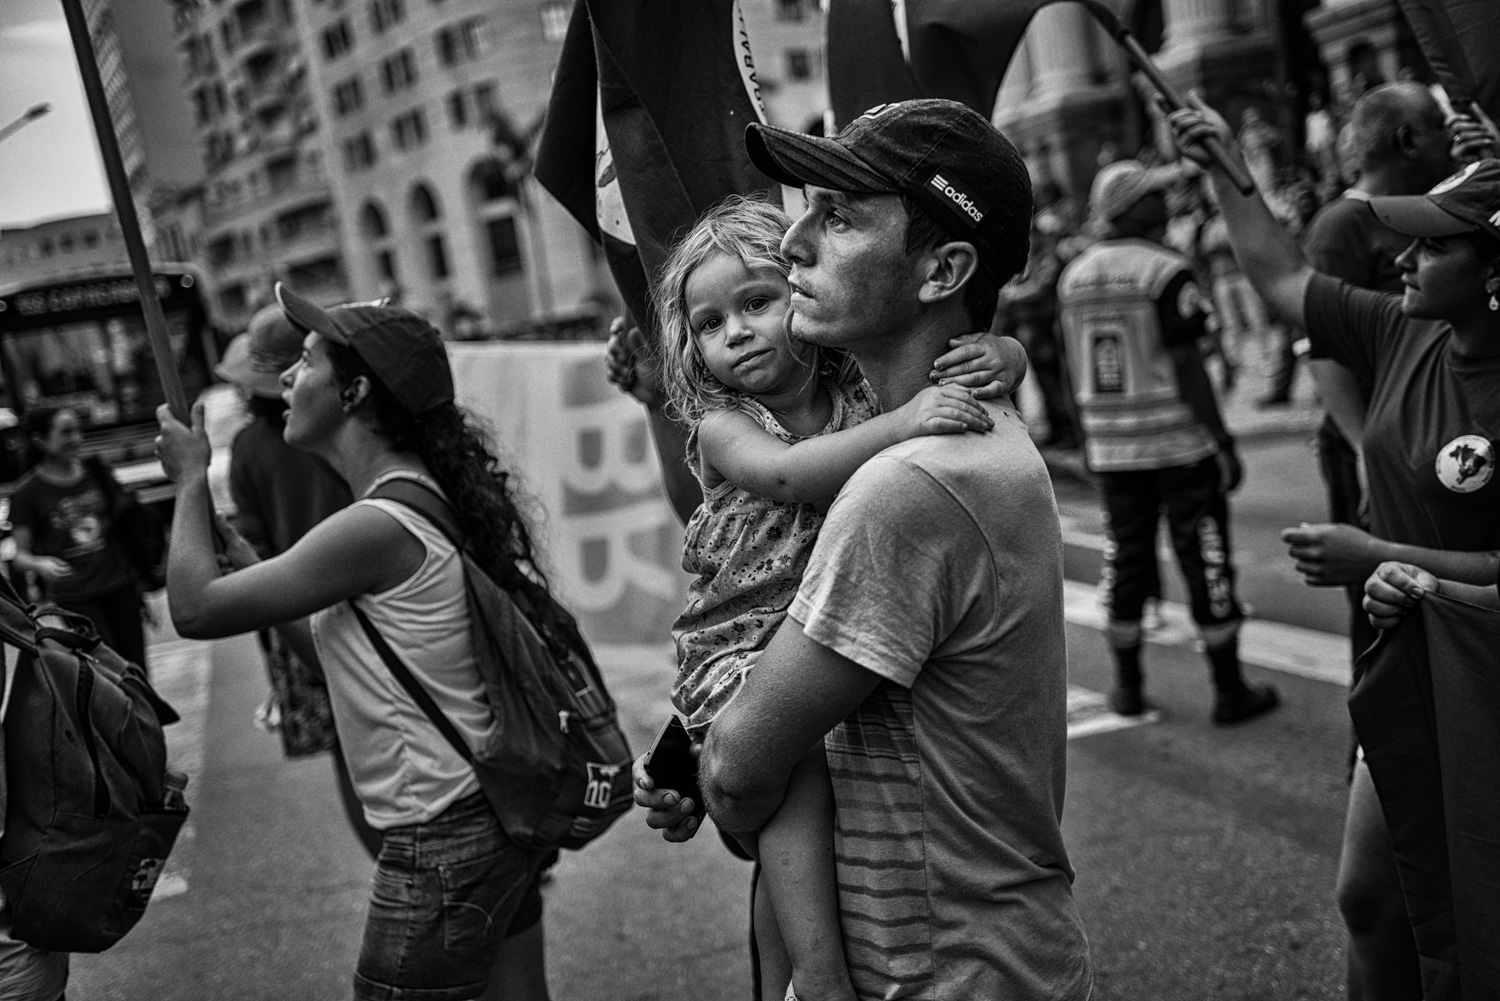 A young family from the landless workers movement march in Rio de Janeiro in support of Petrobras, the state run oil company. In recent weeks, the company has been embroiled in one of the largest corruption scandals in the nations history. Rio de Janeiro, Brazil, 03-13-2015.